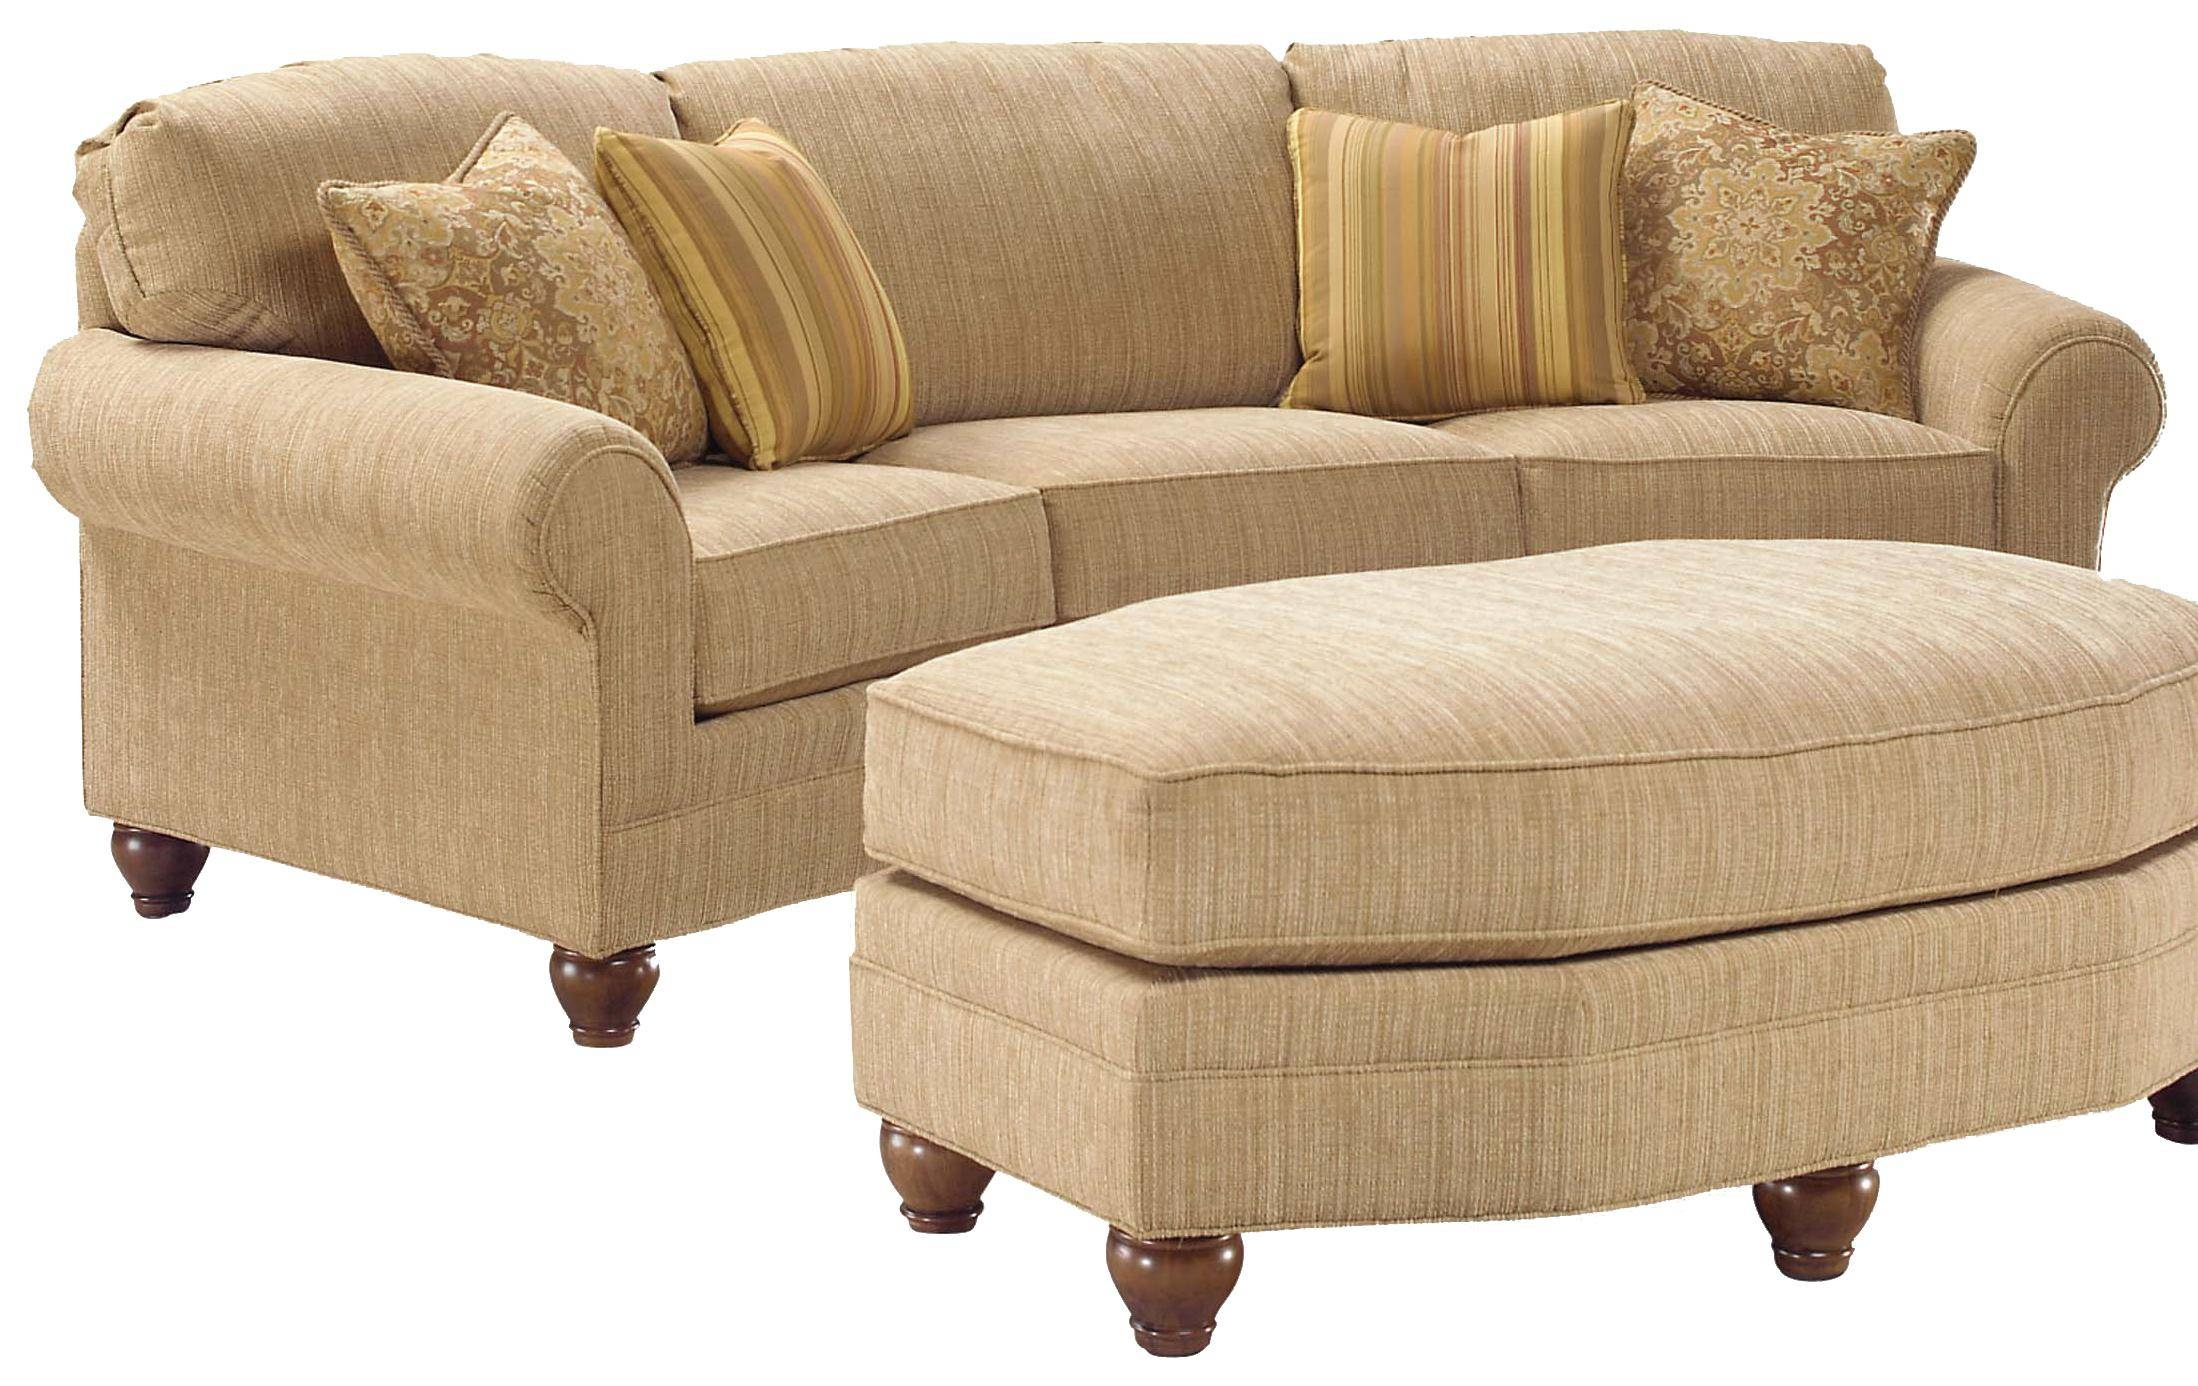 Fairfield 3768 Curved Arch Sofa - Ahfa - Conversation Sofa Dealer regarding Conversation Sofa Sectional (Image 15 of 30)